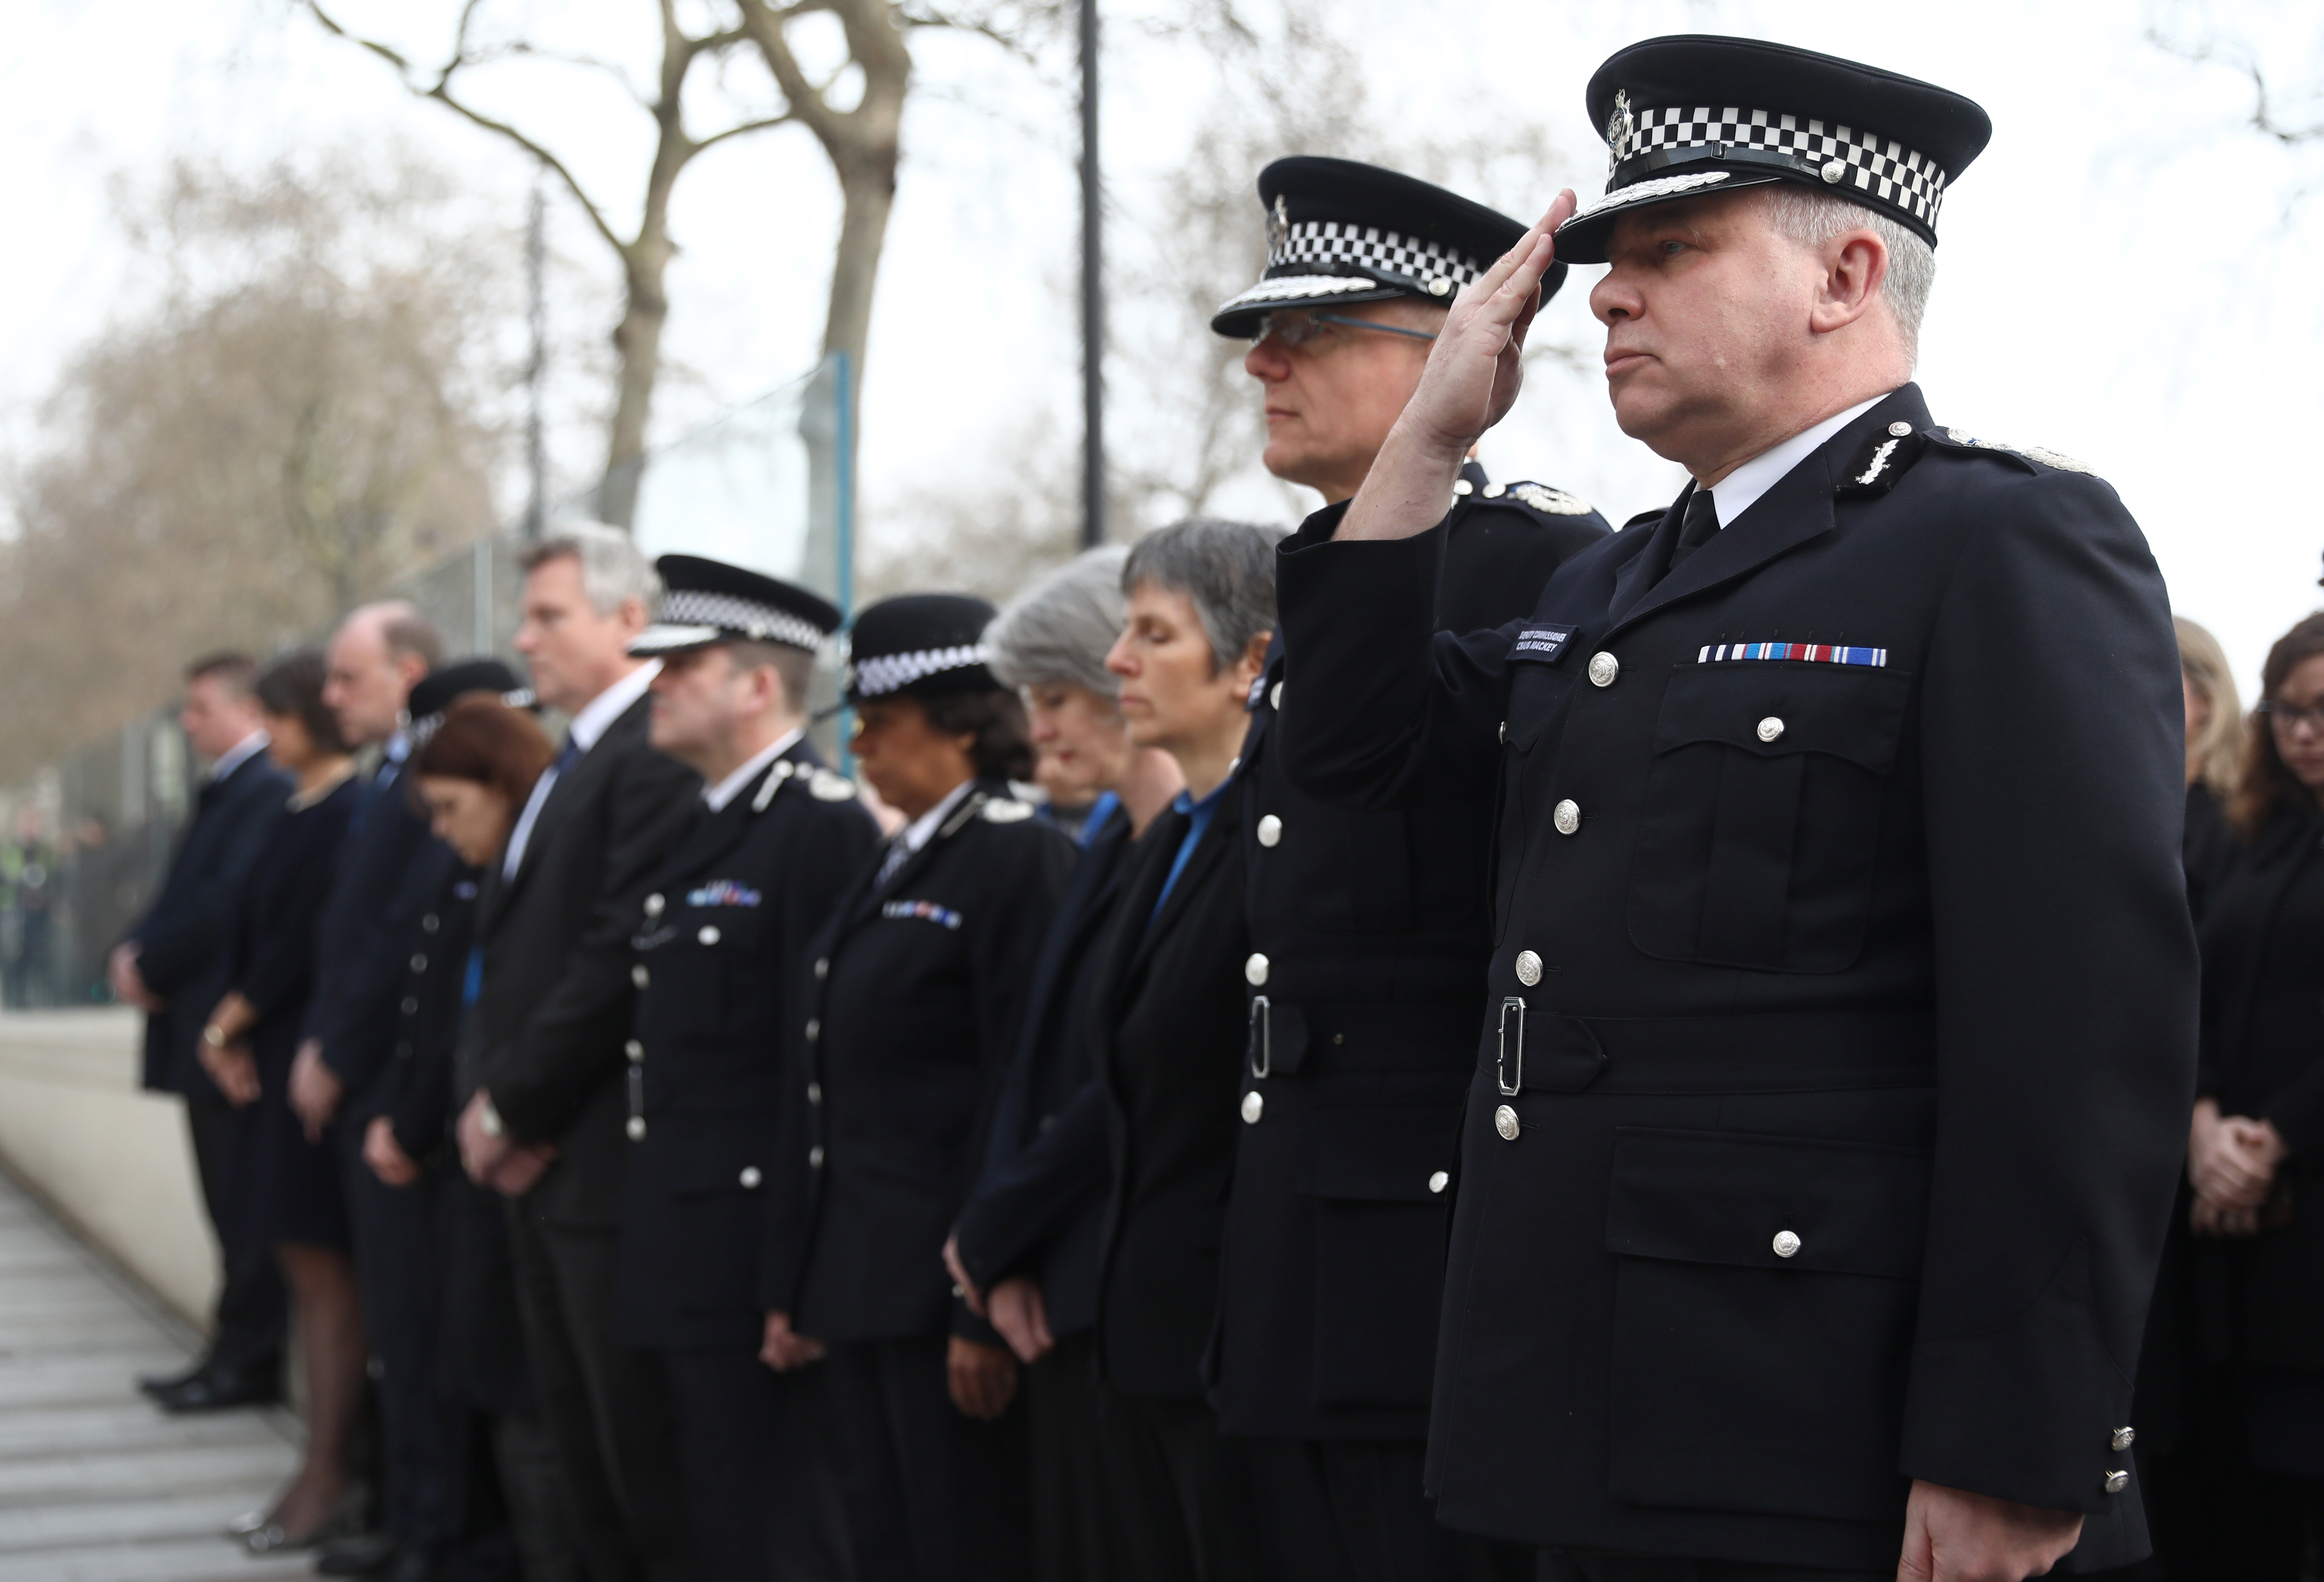 Police officers salute during a minute's silence outside New Scotland Yard. (REUTERS/Neil Hall)